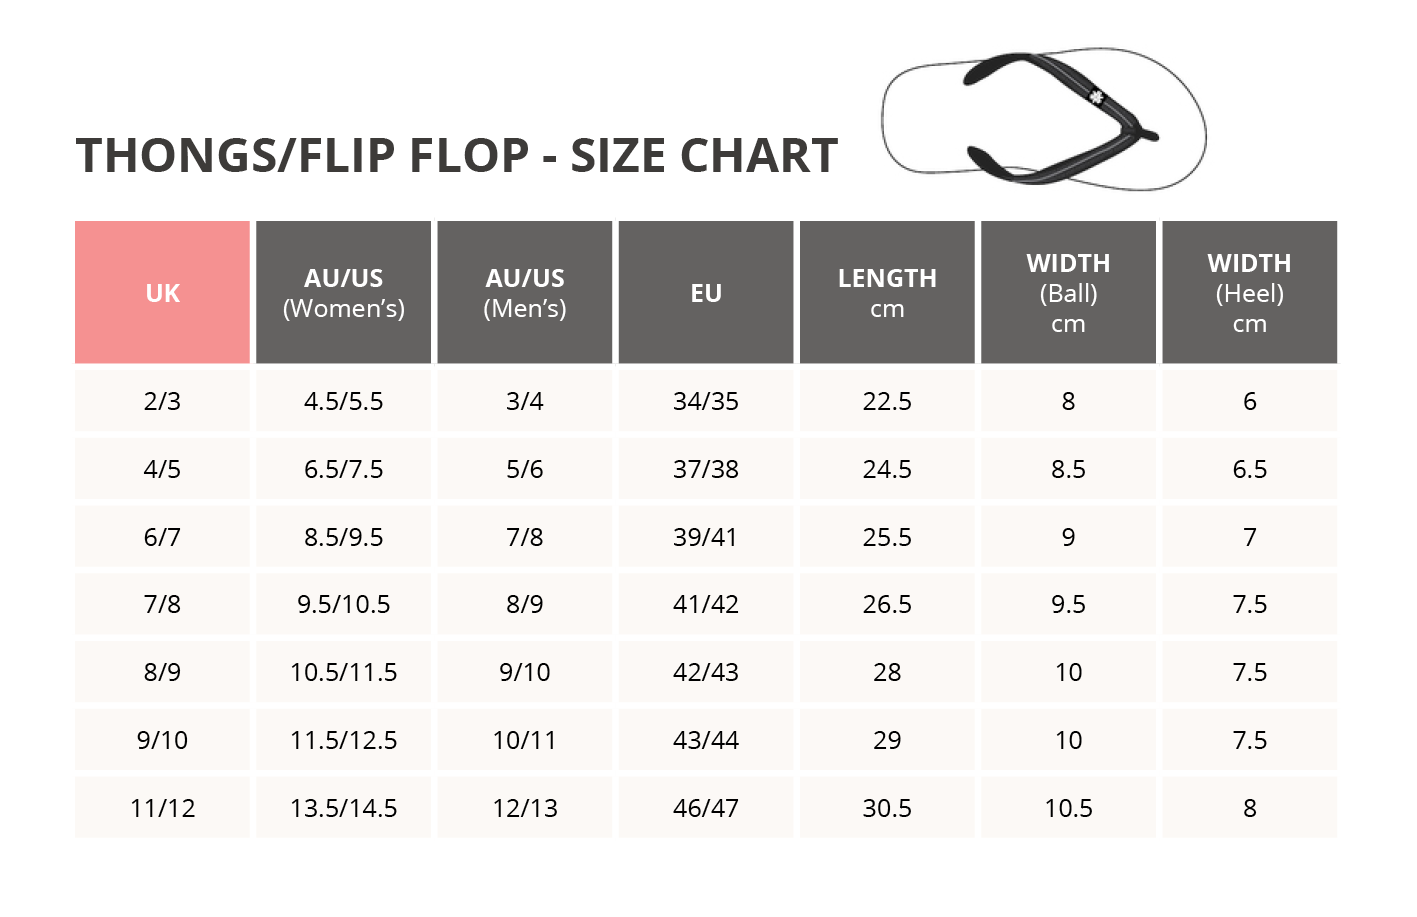 thongs/flip flops sizing guide